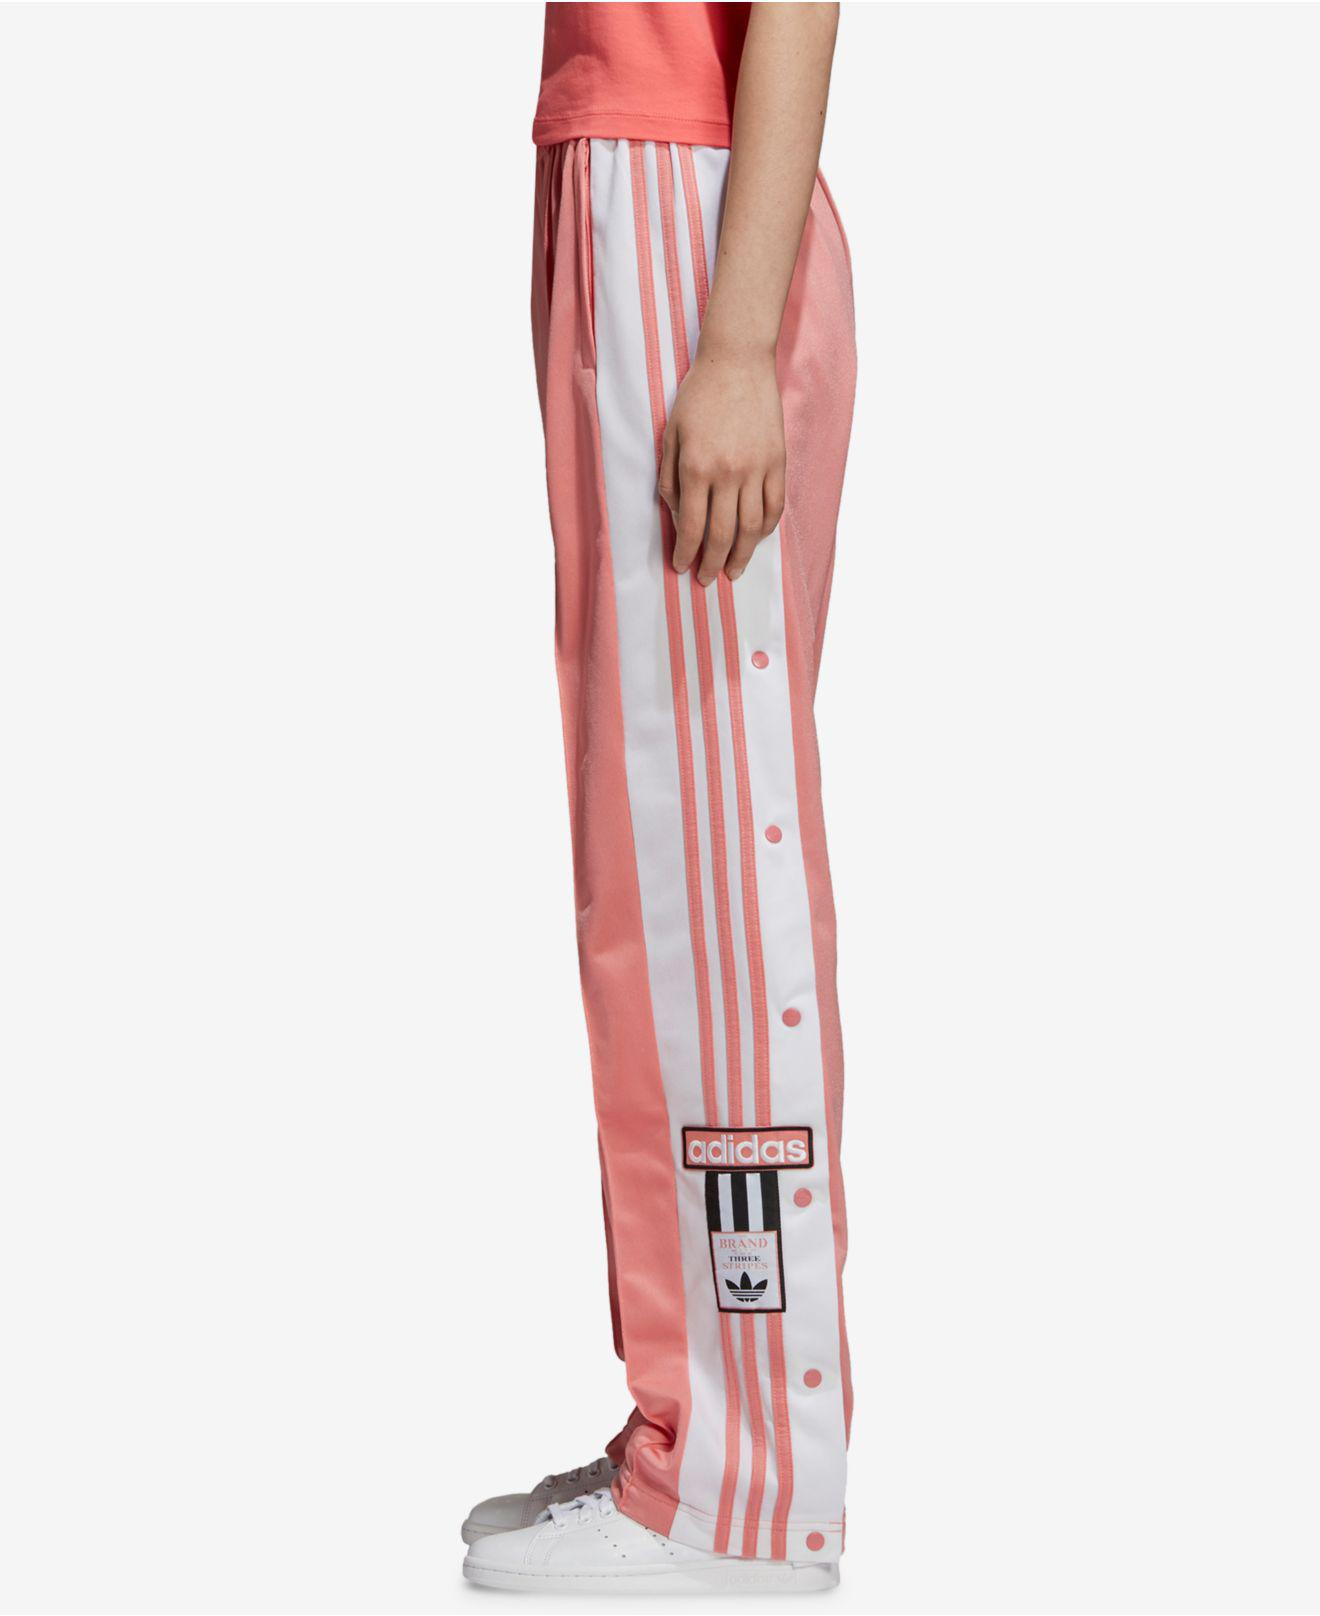 adidas the brand with the 3 stripes pants